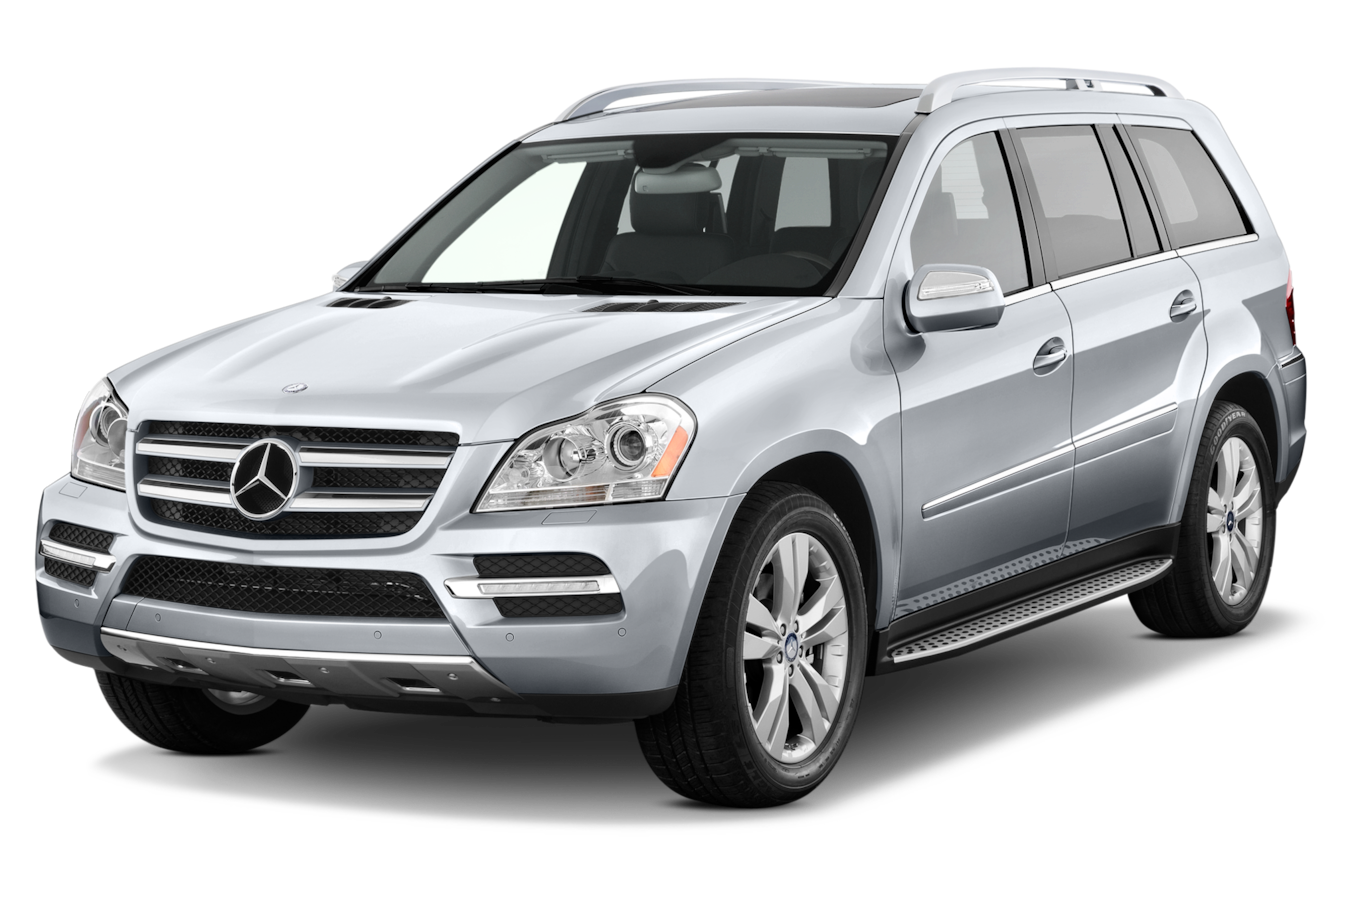 2011 Mercedes-Benz GL-Class Reviews and Rating | Motor Trend